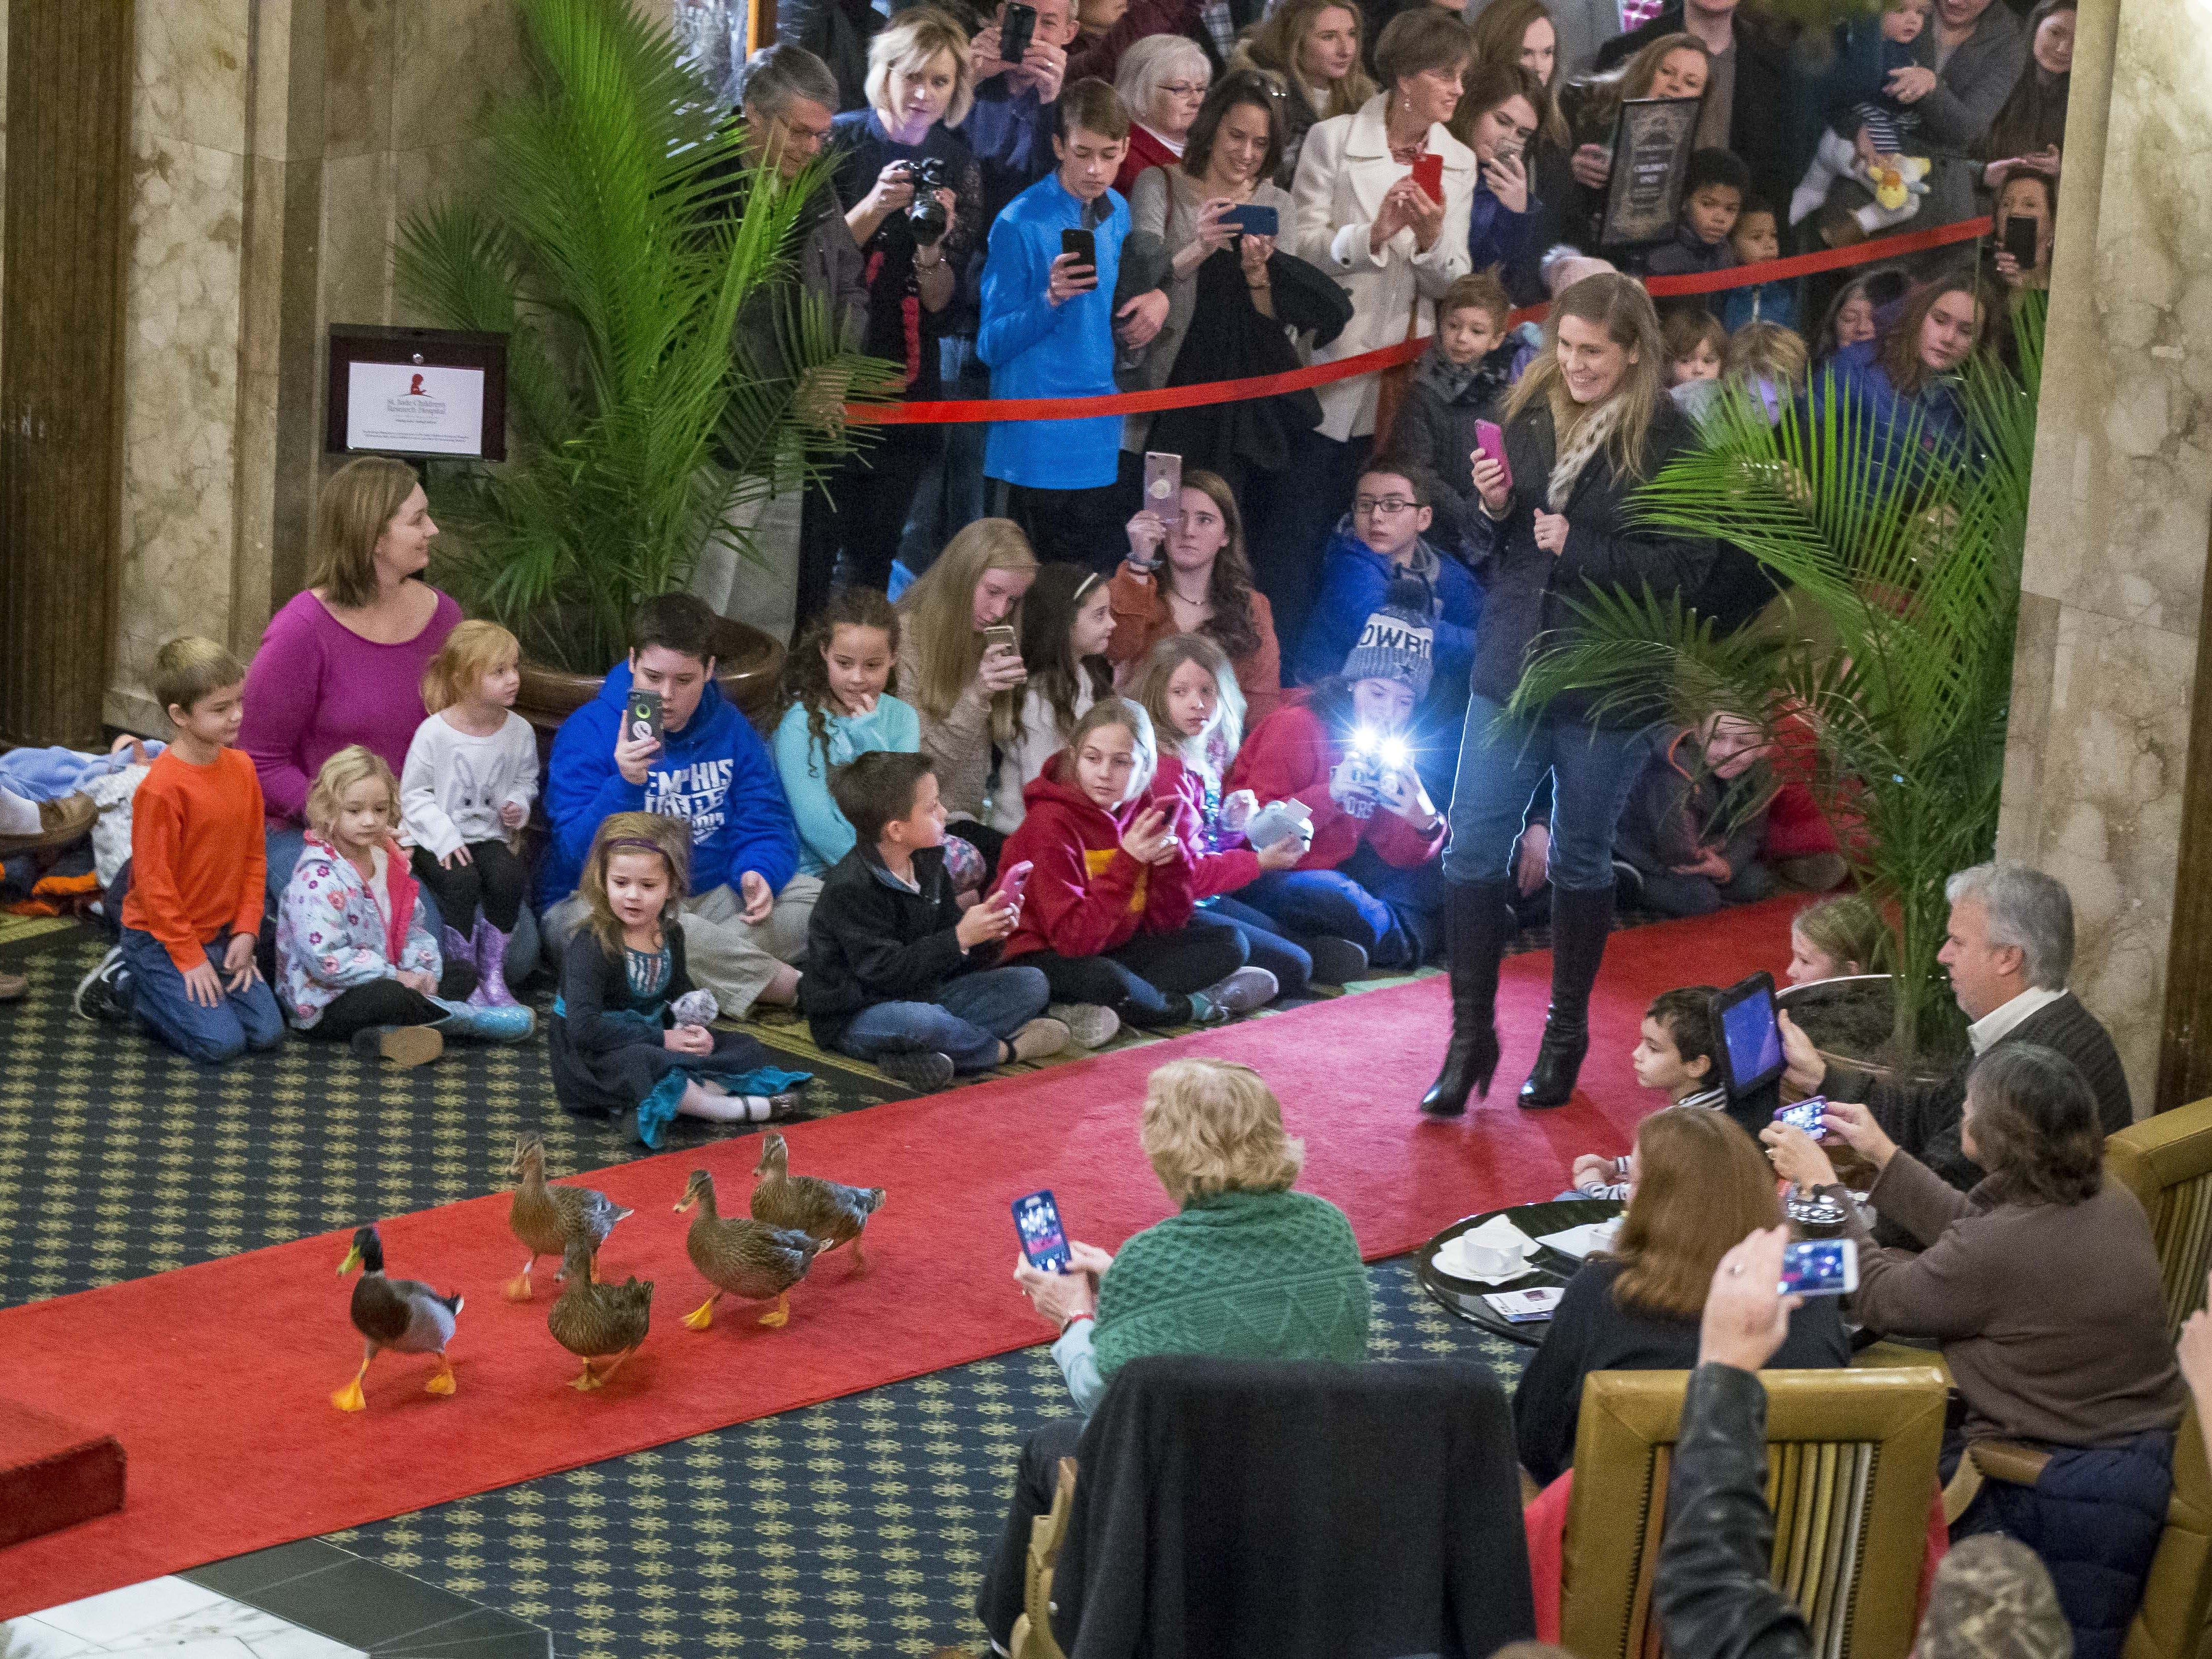 Iowa Cyclone fans and others watch the Peabody Ducks stroll into the lobby of the Peabody Hotel in Memphis on Dec. 28, 2017. The ducks have marched through the hotel since the 1930s.